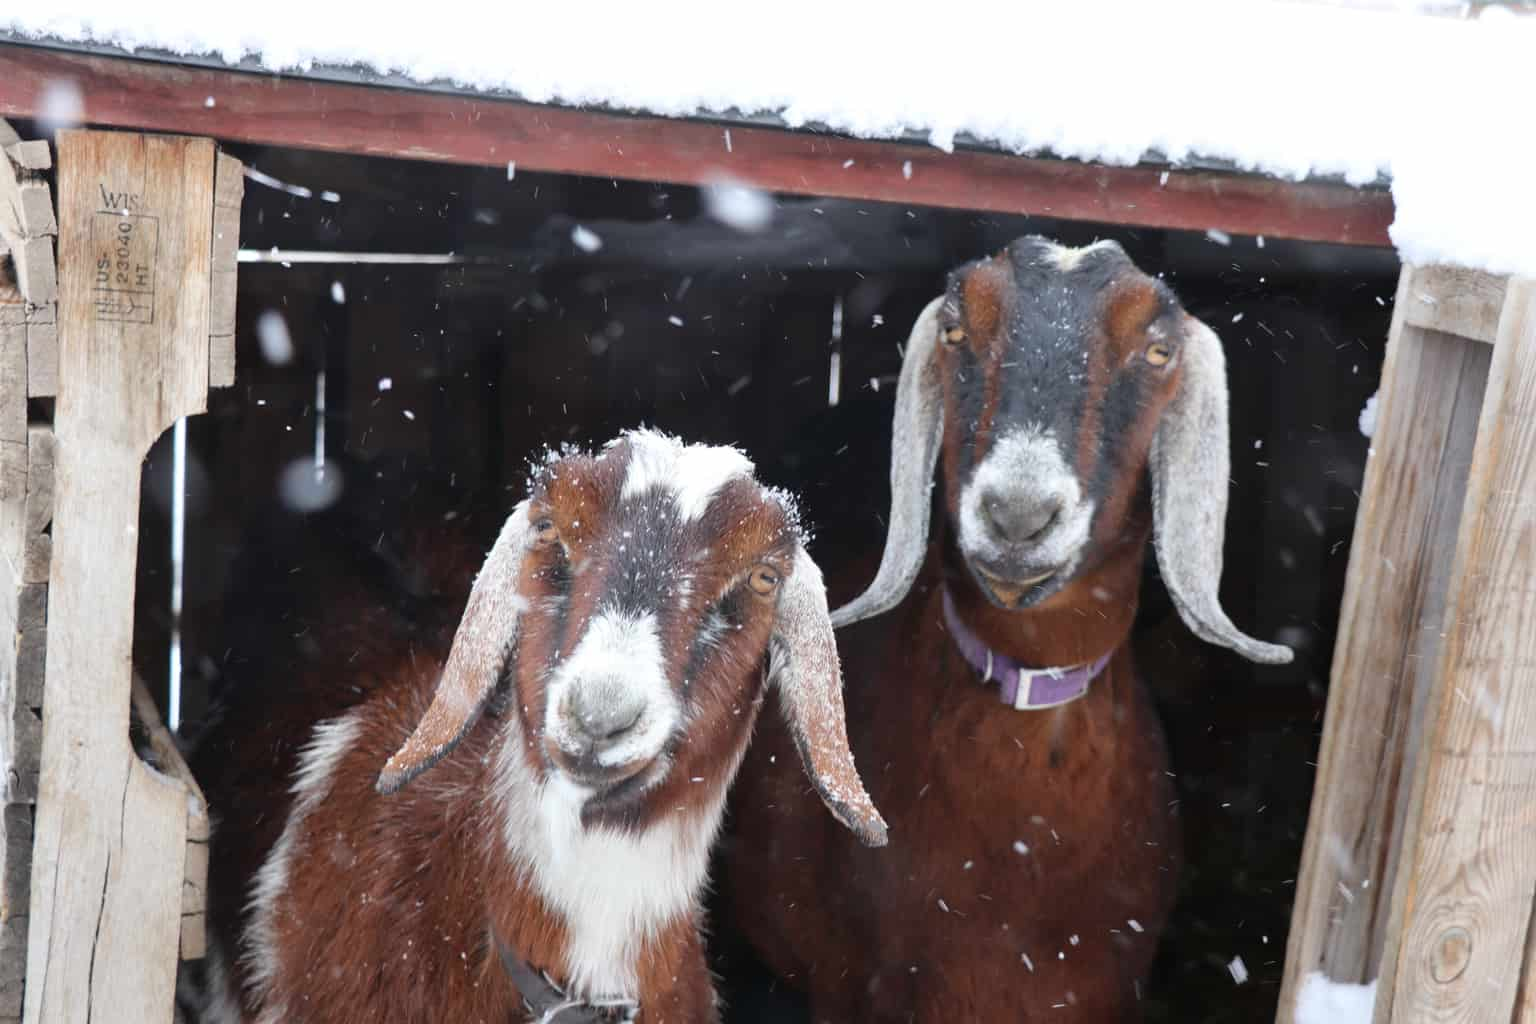 Goats need a warm shelter to help them stay warm in frigid temperatures!